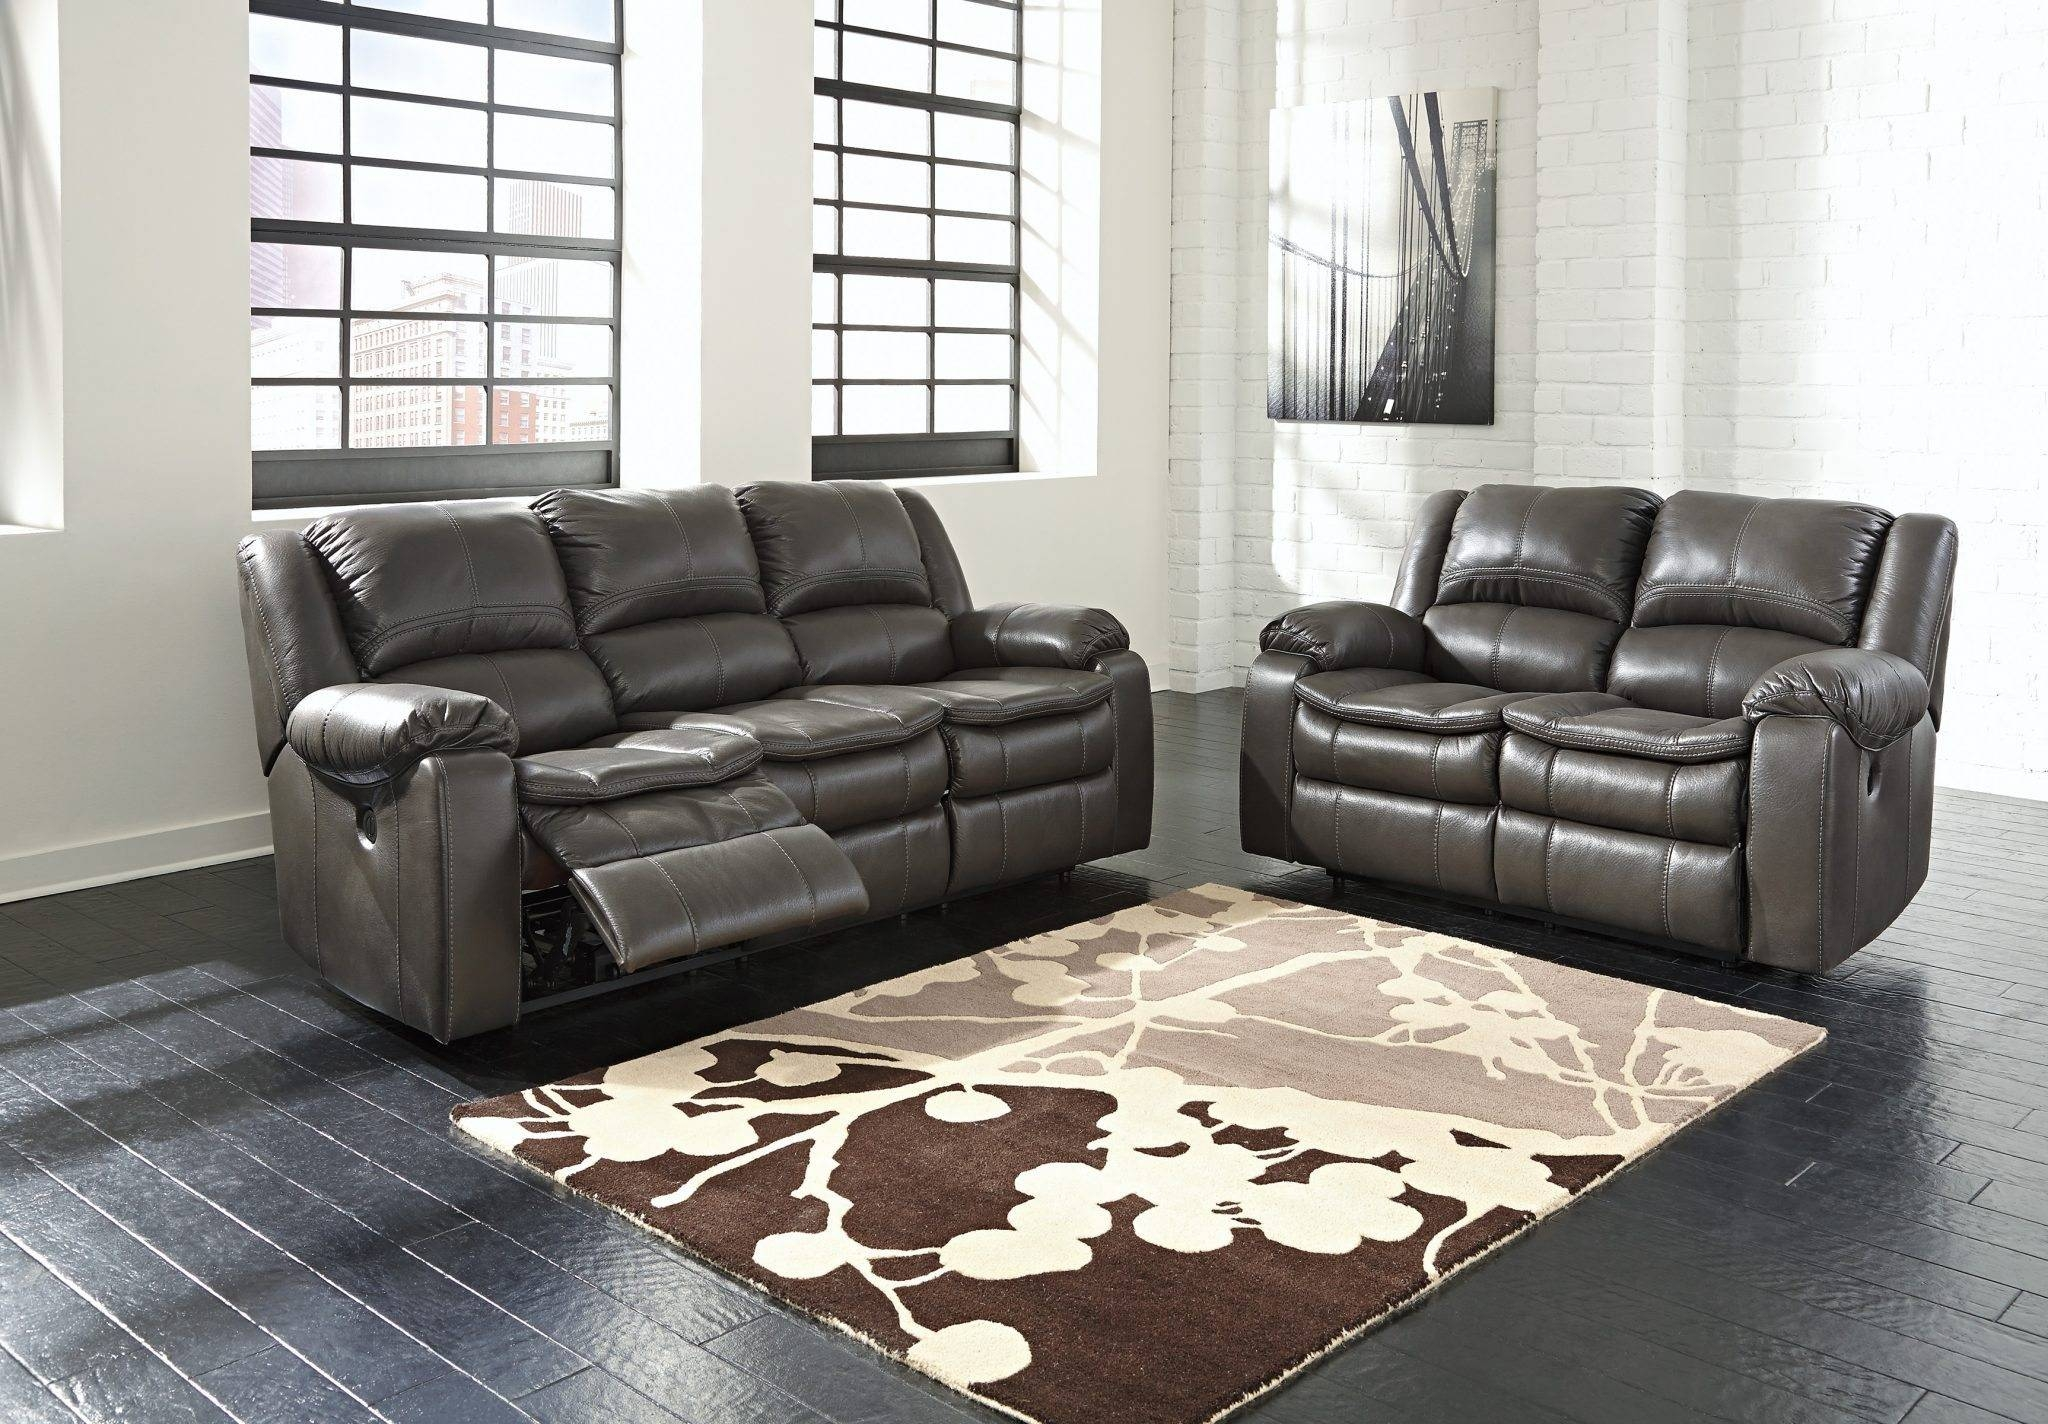 Best Furniture Mentor Oh: Furniture Store - Ashley Furniture pertaining to Ashley Furniture Gray Sofa (Image 15 of 30)